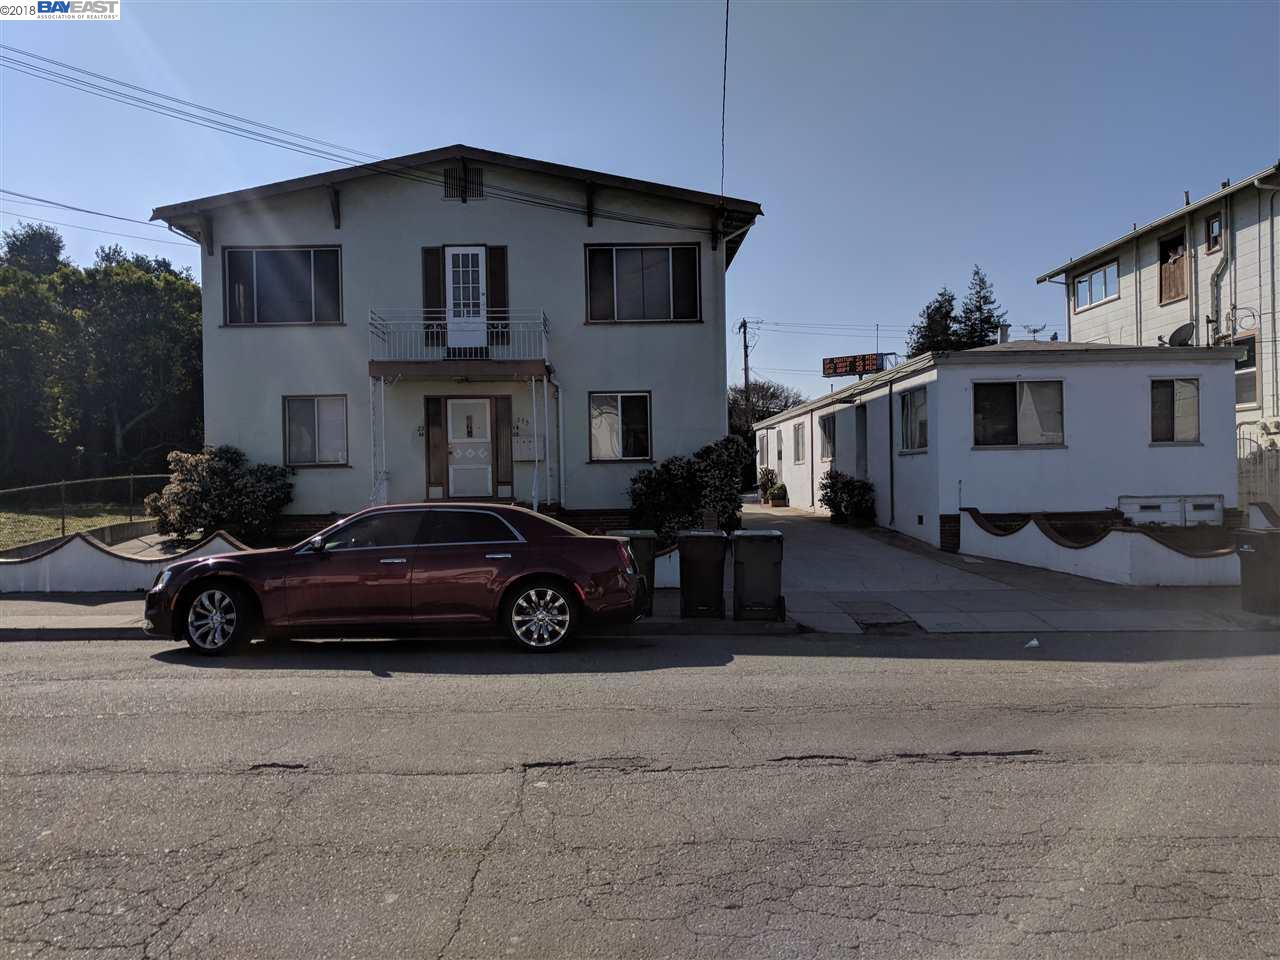 Multi-Family Home for Sale at 577 56th Street 577 56th Street Oakland, California 94609 United States